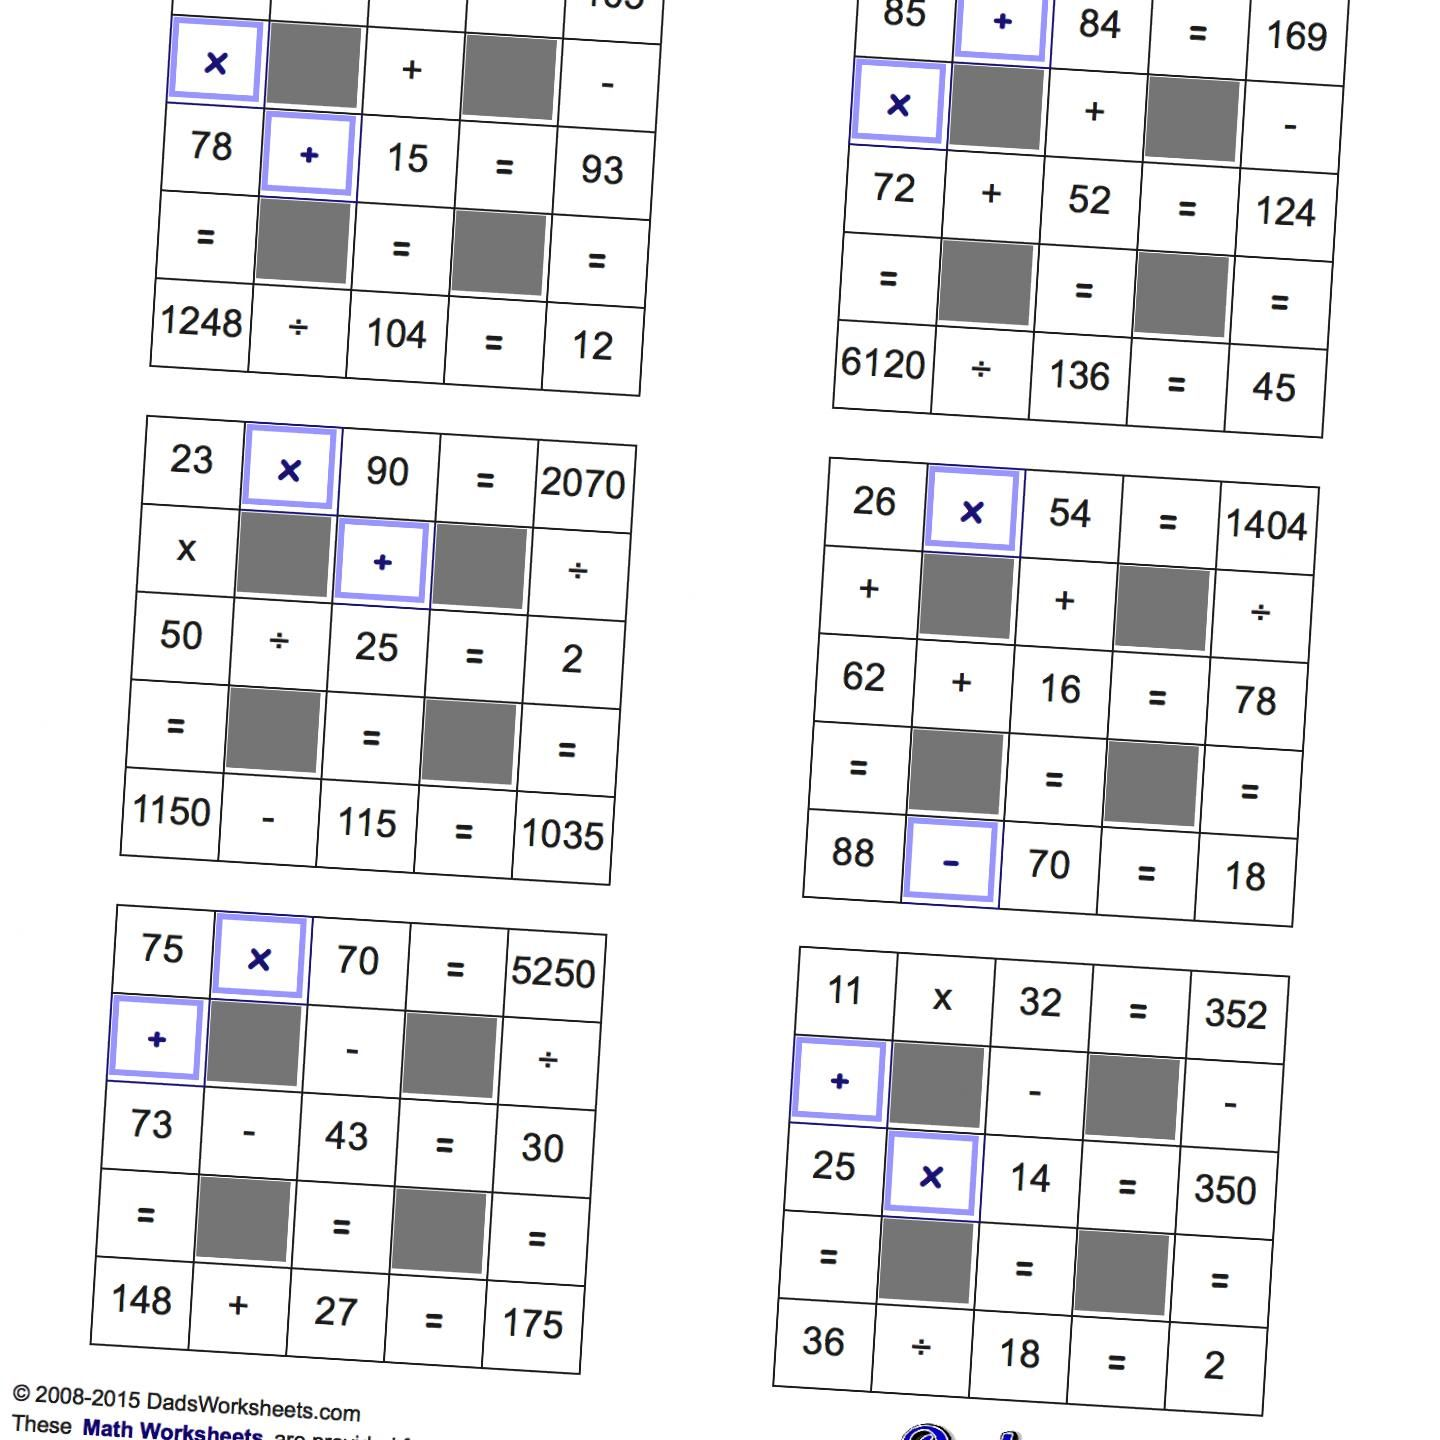 Math Worksheets All Operations Grid Puzzles With Missing